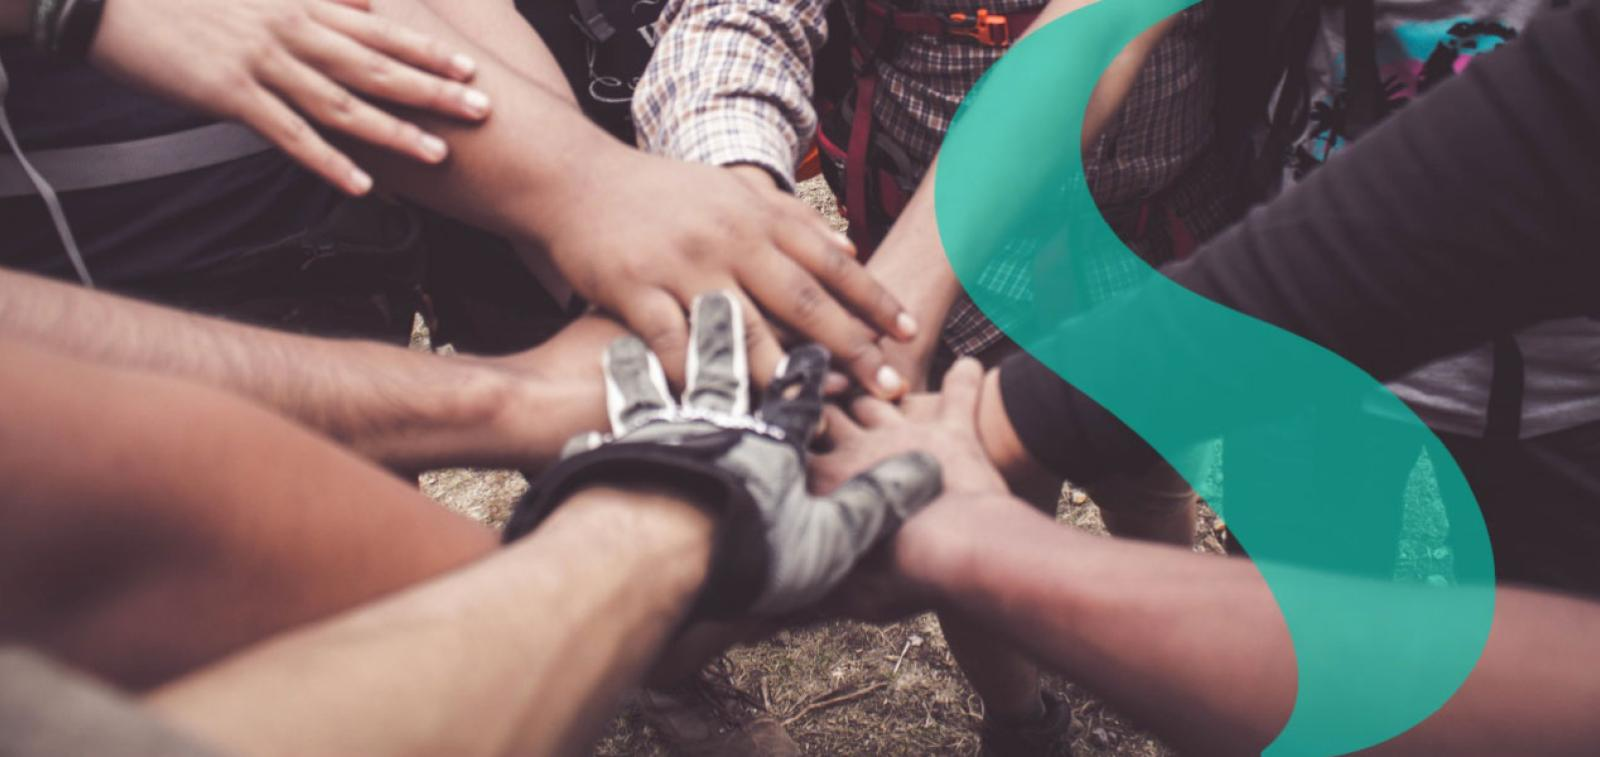 A group of hands piled on top of each other.